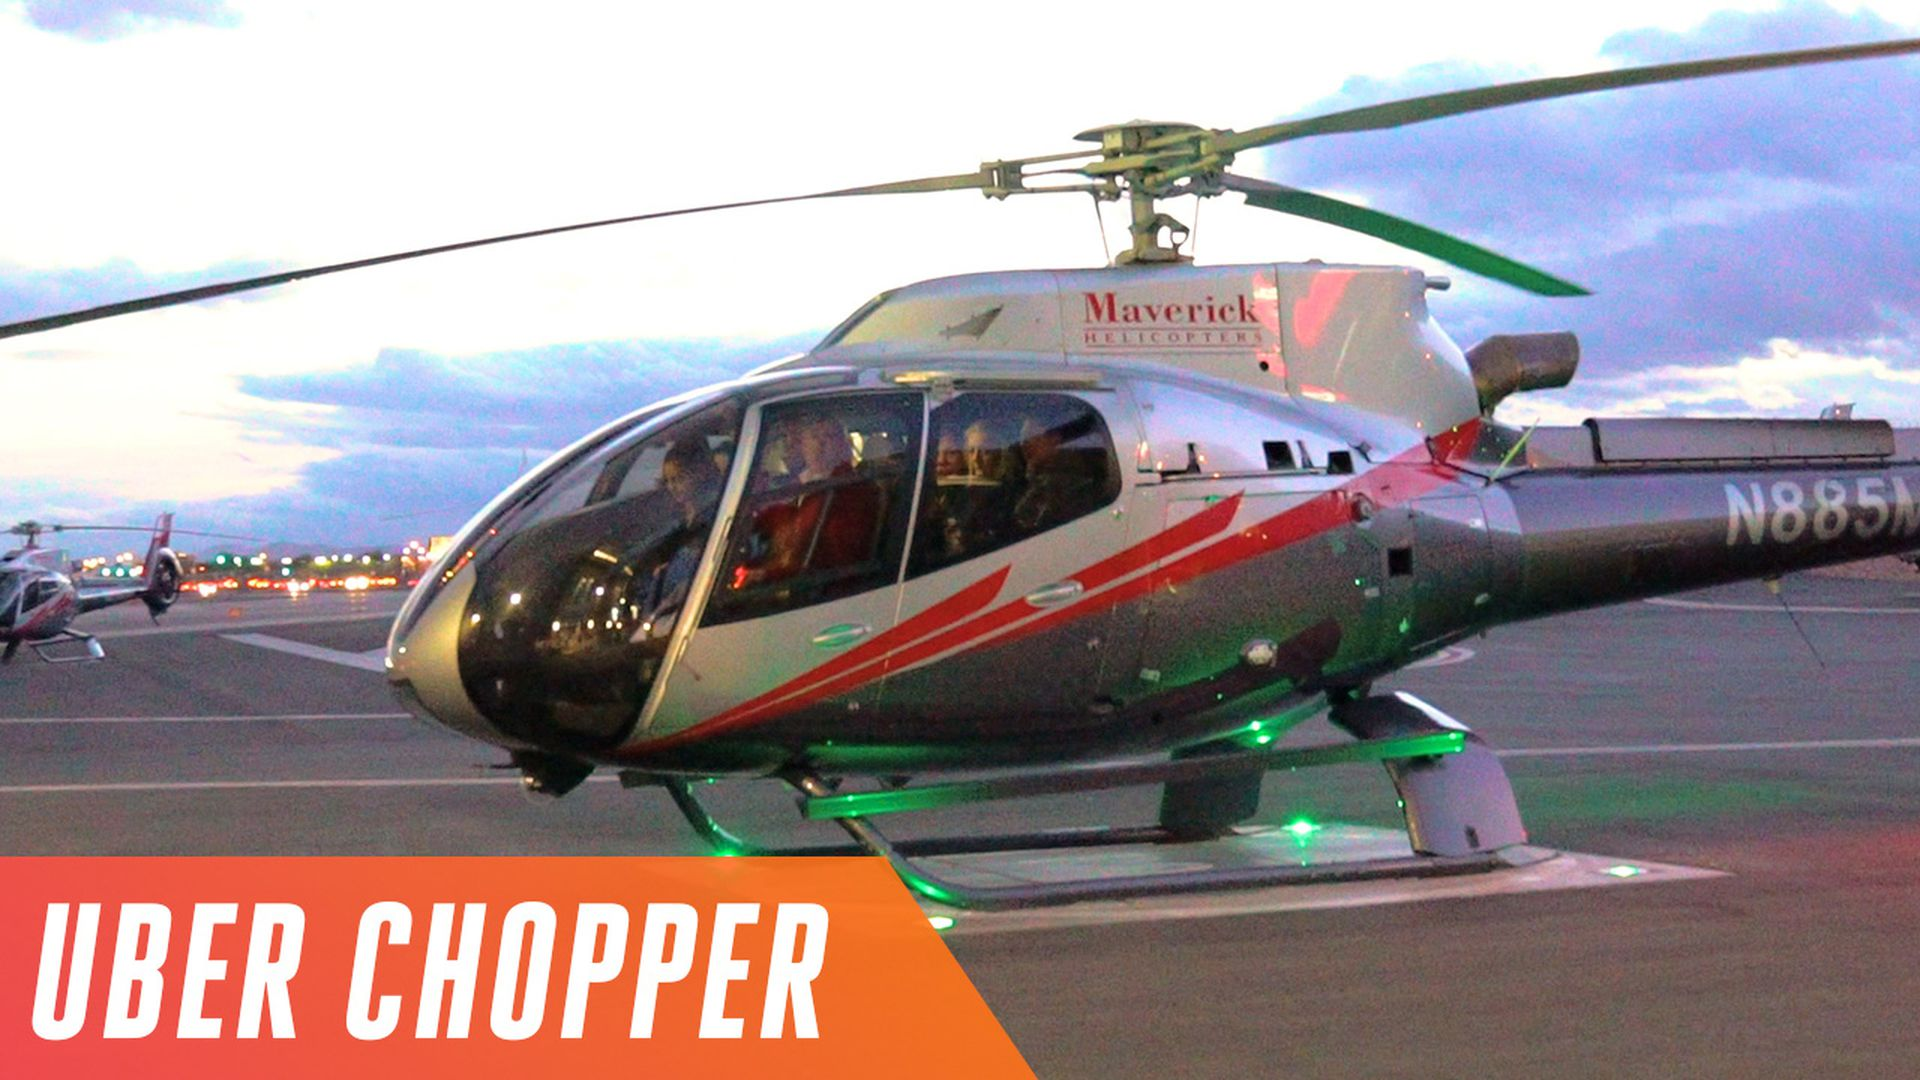 Uber Chopper Is A Total Marketing Gimmick That Happens To Be Stupid Fun